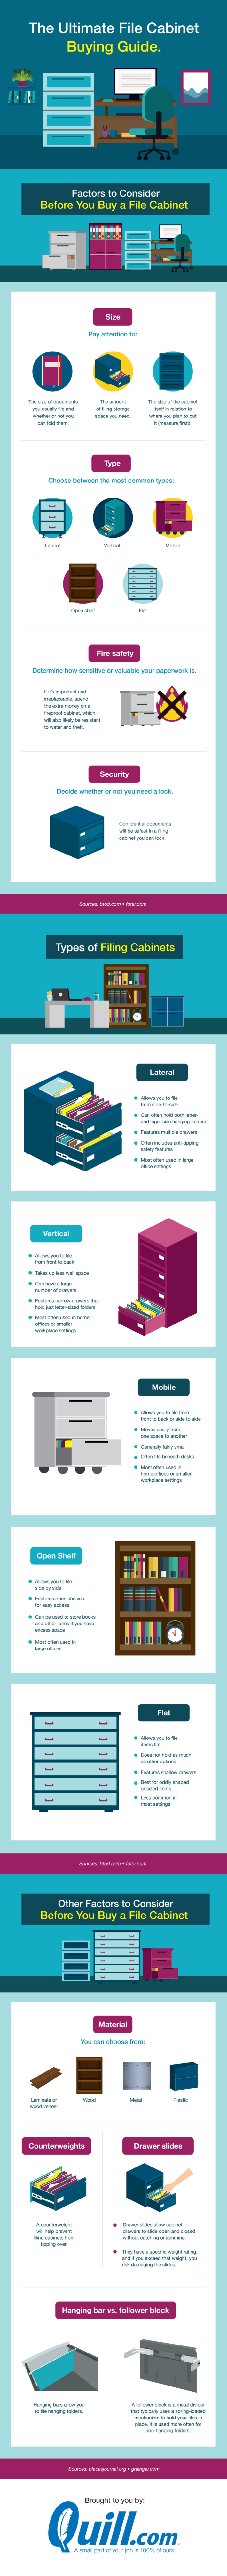 The ultimate file cabinet buying guide